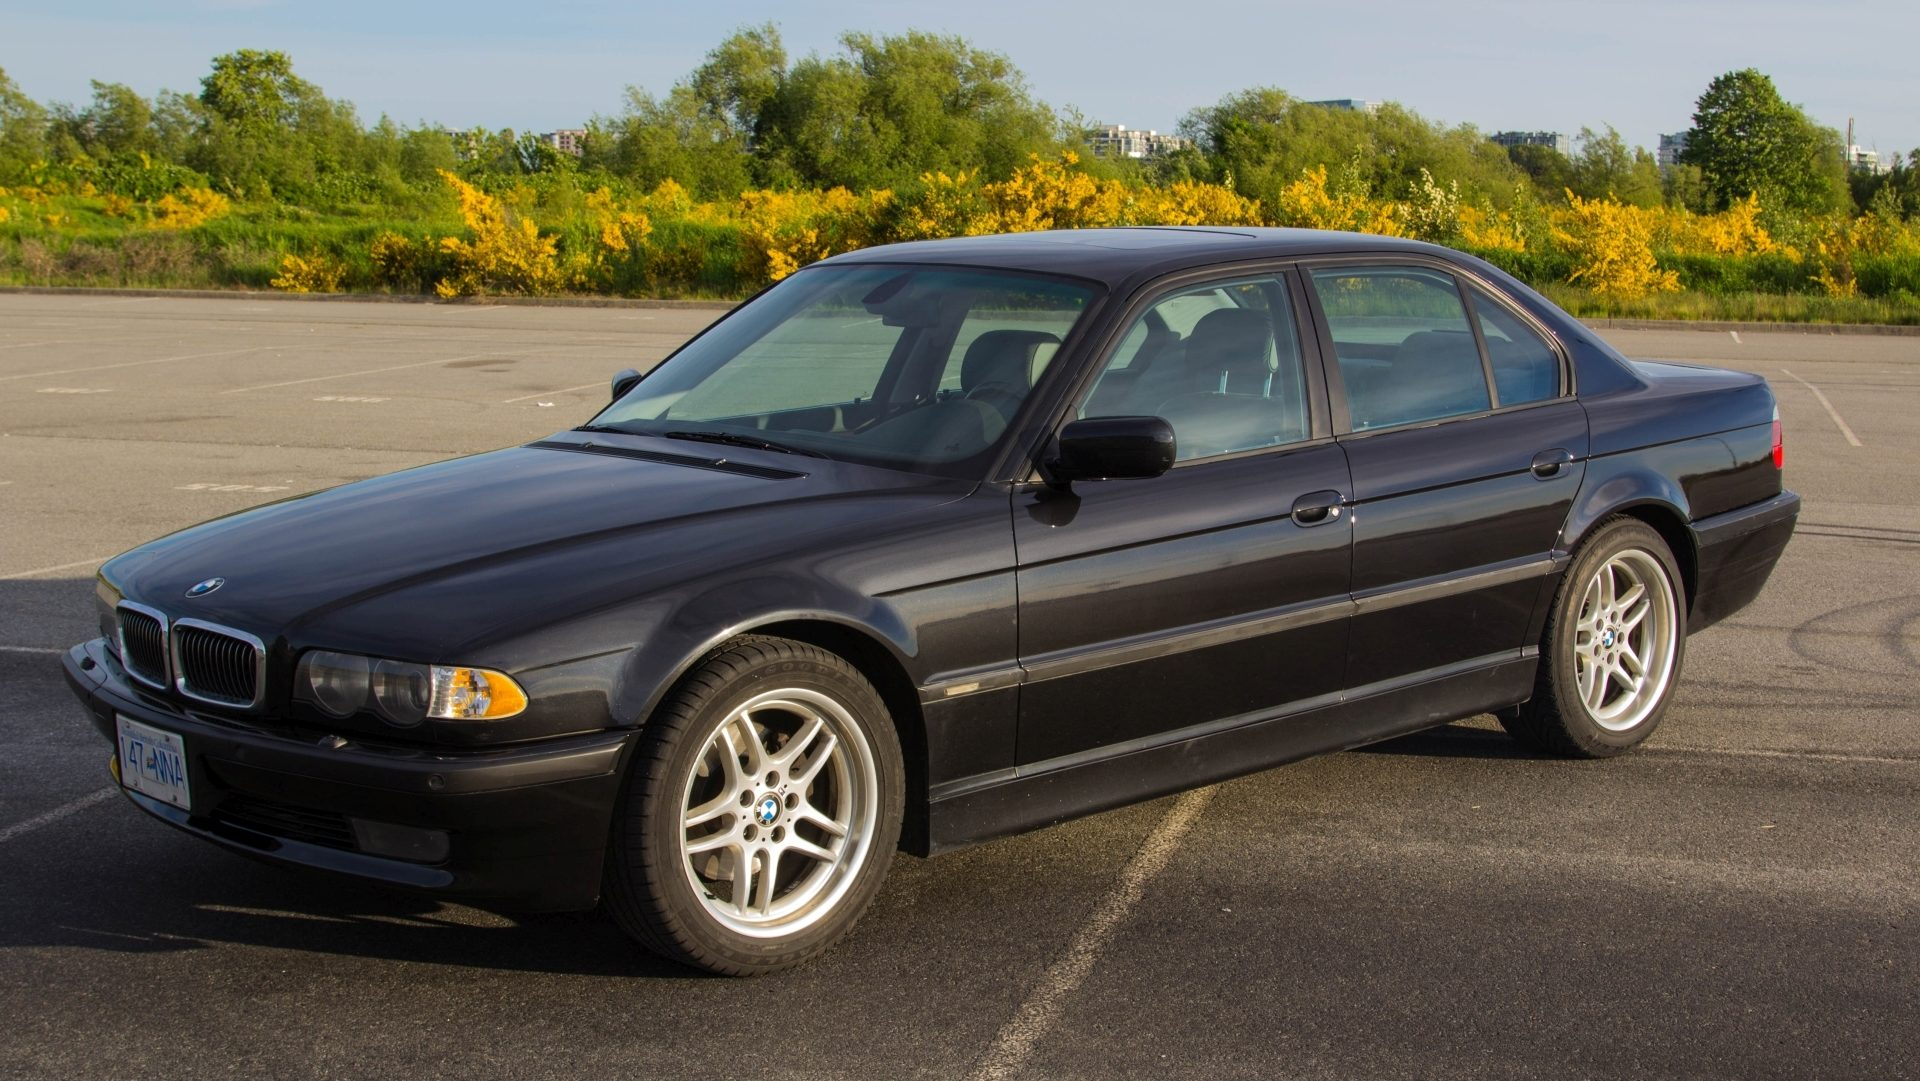 Anthrazit Metallic Bmw Anthrazit Metallic 397 The Bmw E38 7 Series Registry